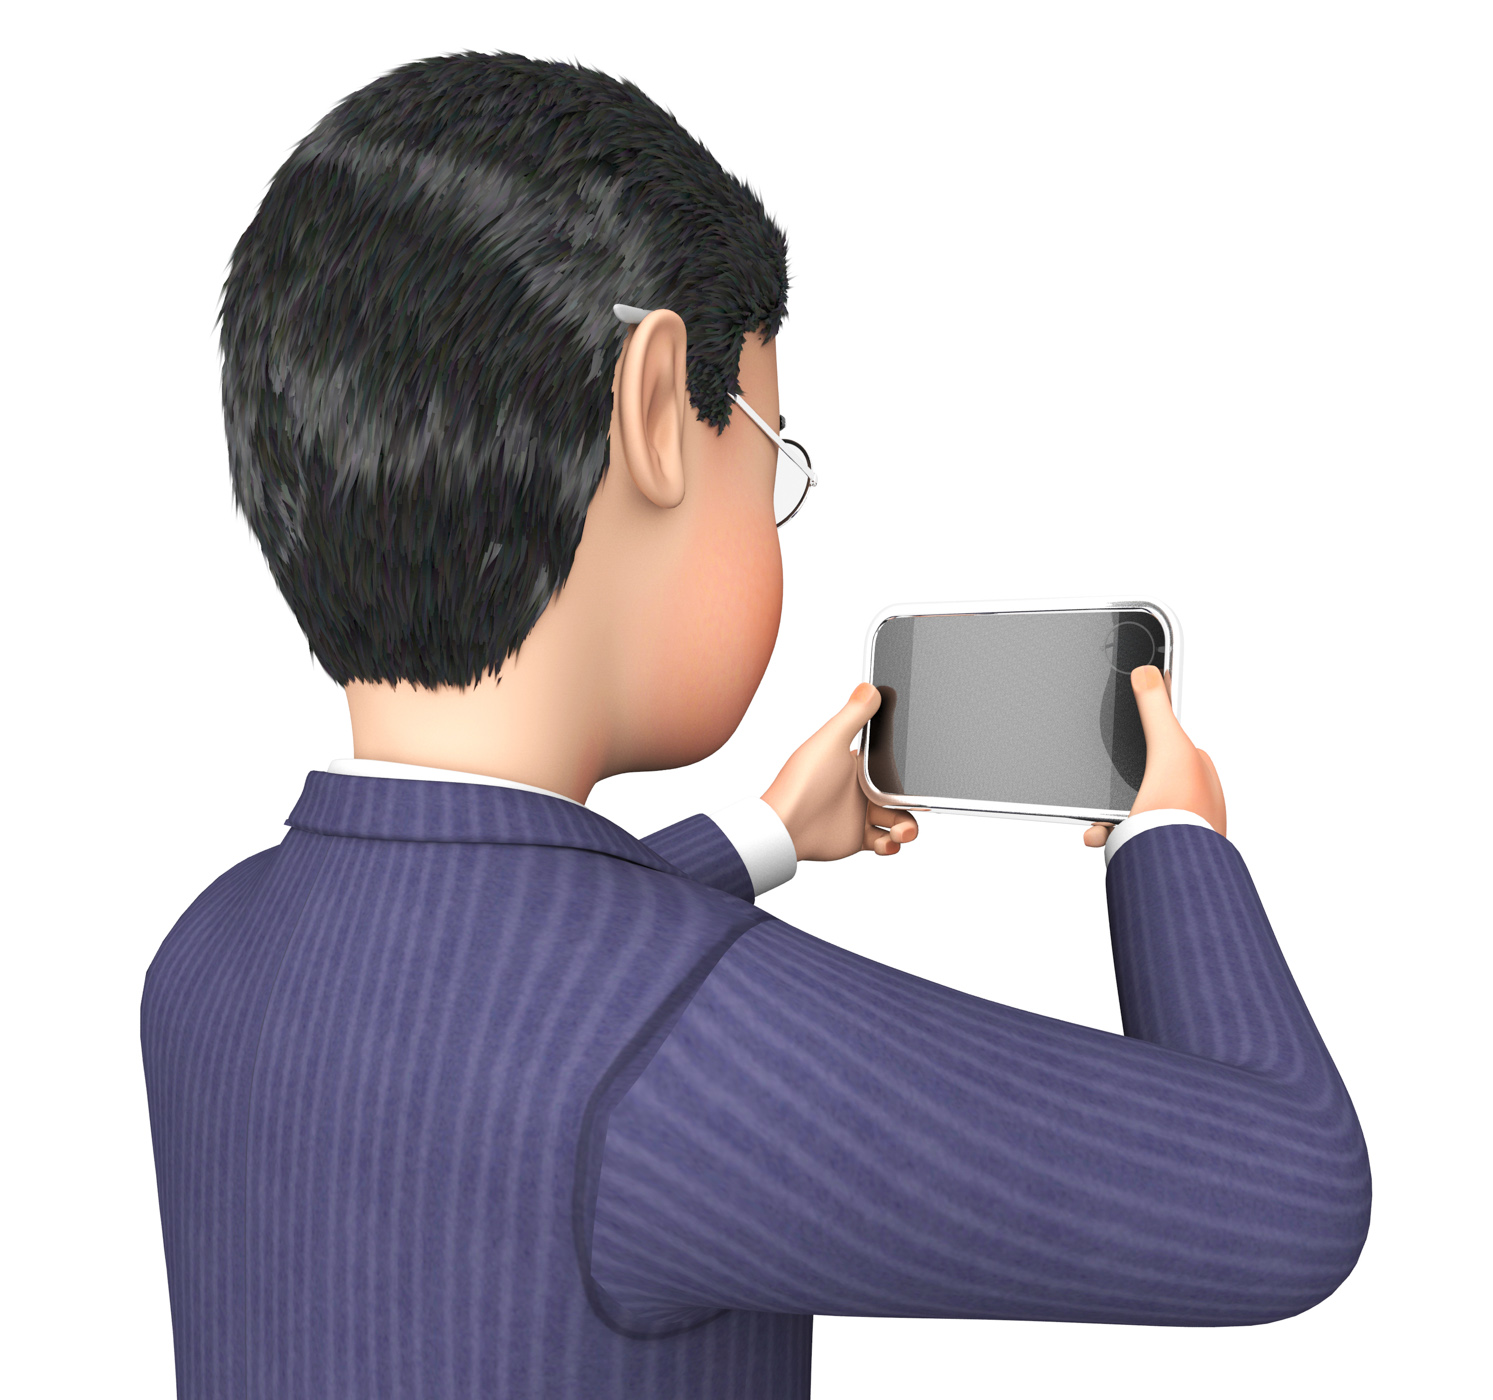 Smartphone Character Represents Business Person And Businessman 3d Ren, Man, Takepicture, Takephoto, Smartphone, HQ Photo